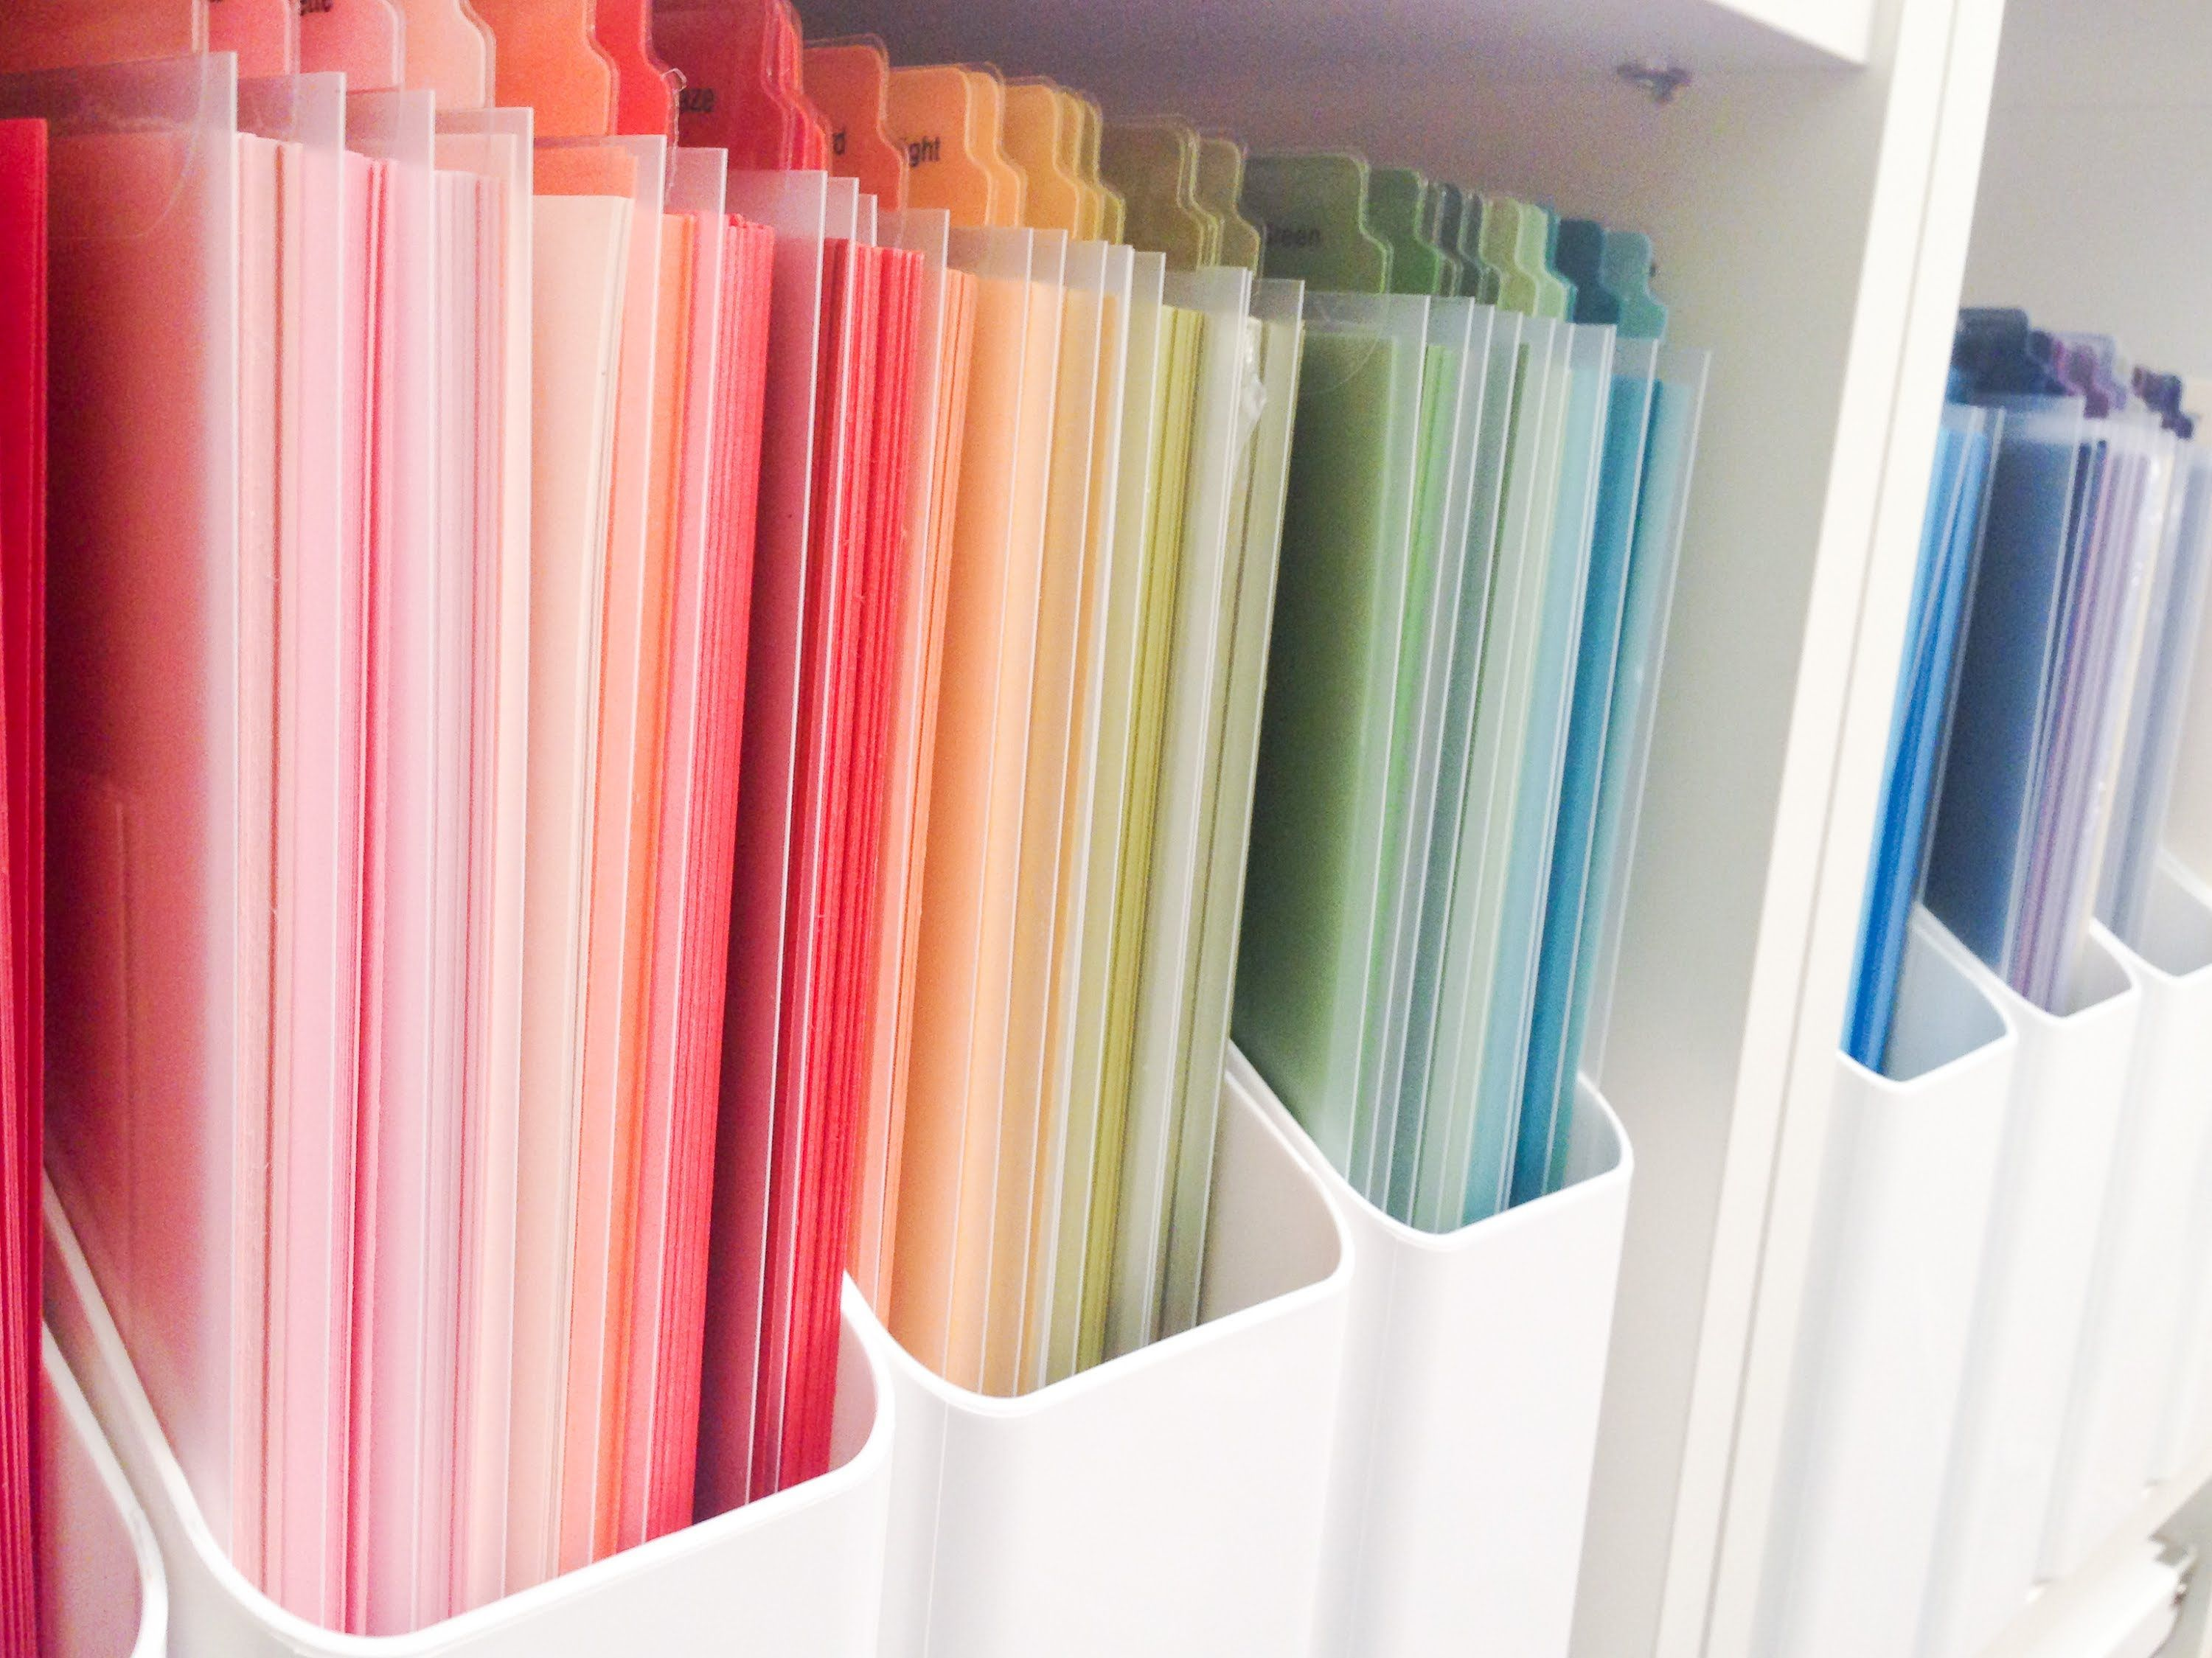 Scrapbook paper store - A Fabulous Video On How To Organize Your Solid Color Card Stock And